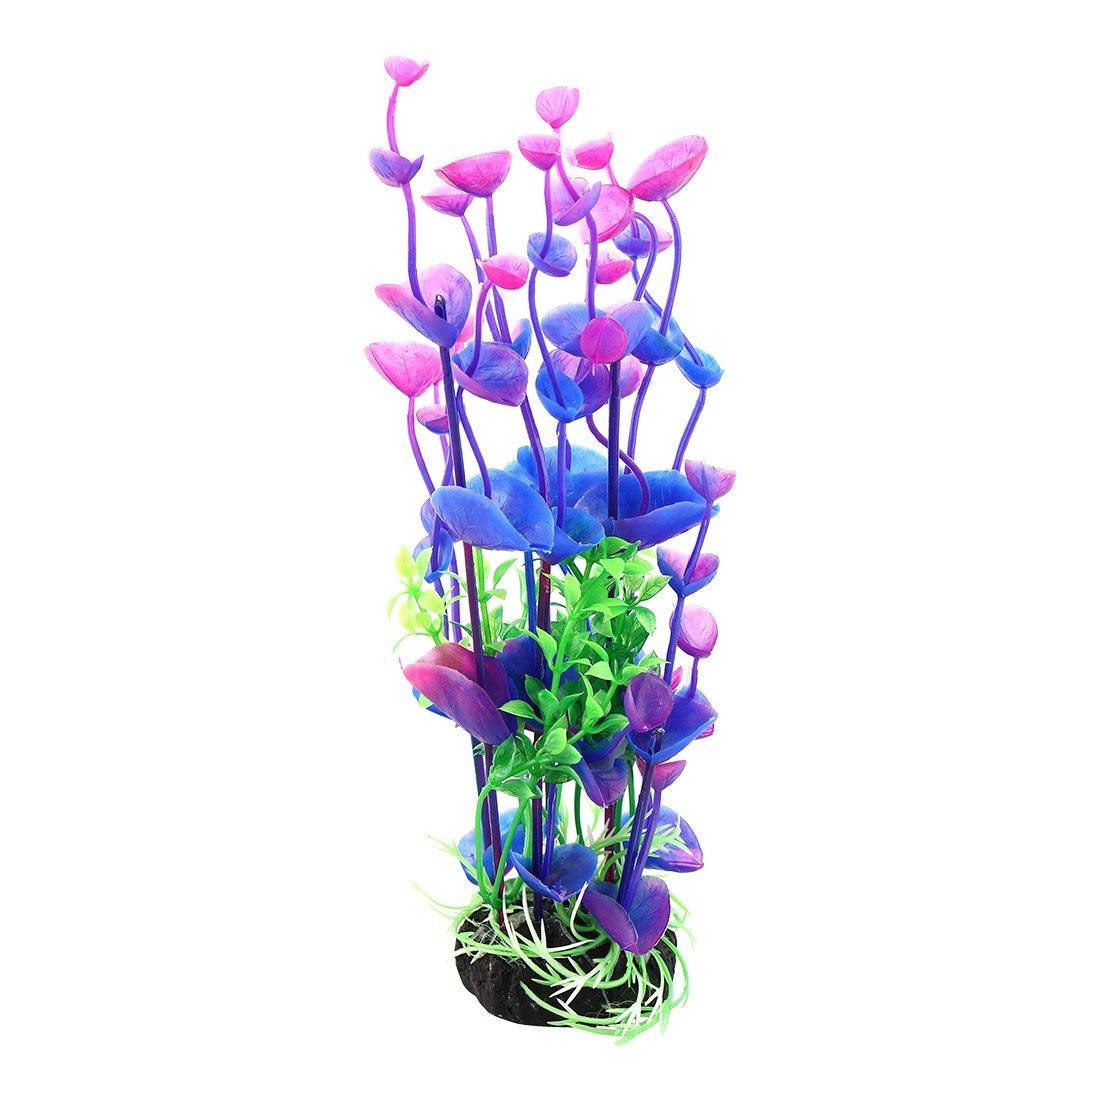 uxcell 8.3 Inch Purple Green Plant Decoration for Aquarium Landscaping